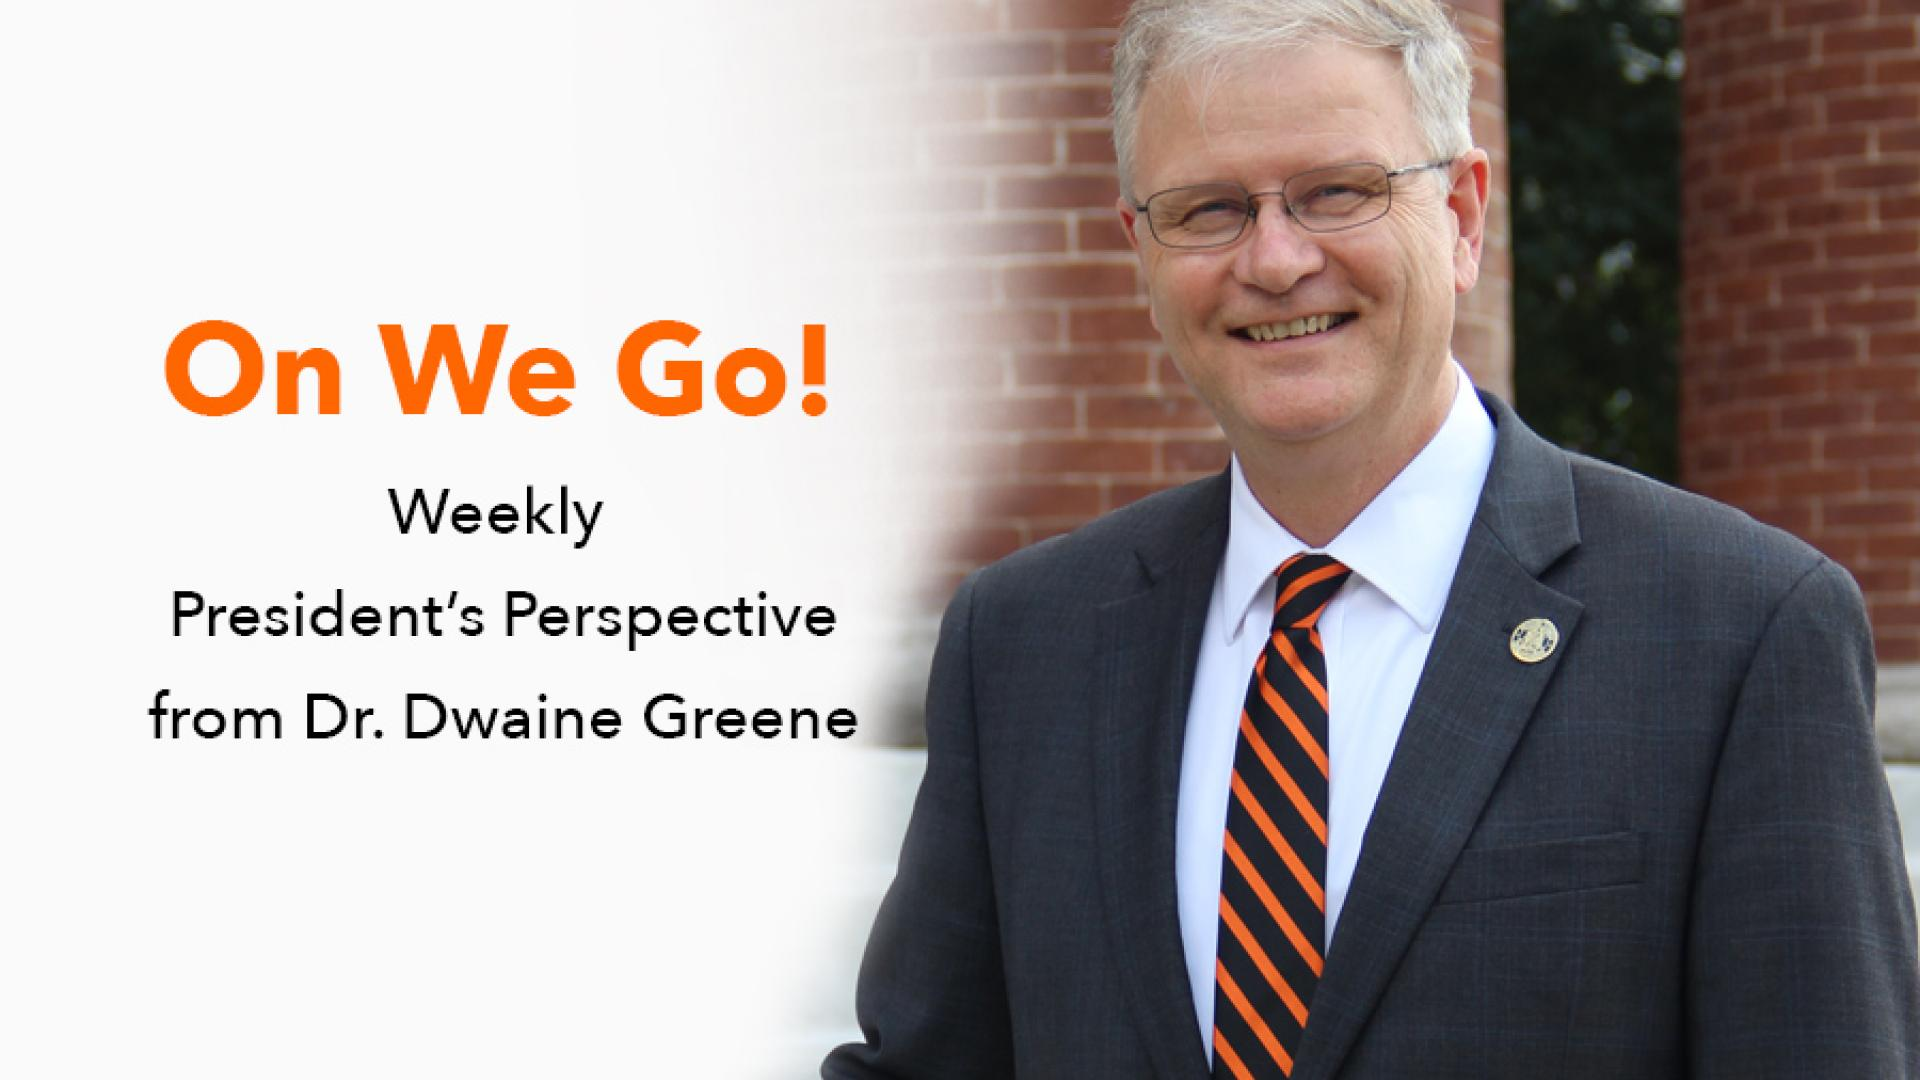 ON WE GO! - Weekly President's Perspective from Dr. Greene - February 28, 2018